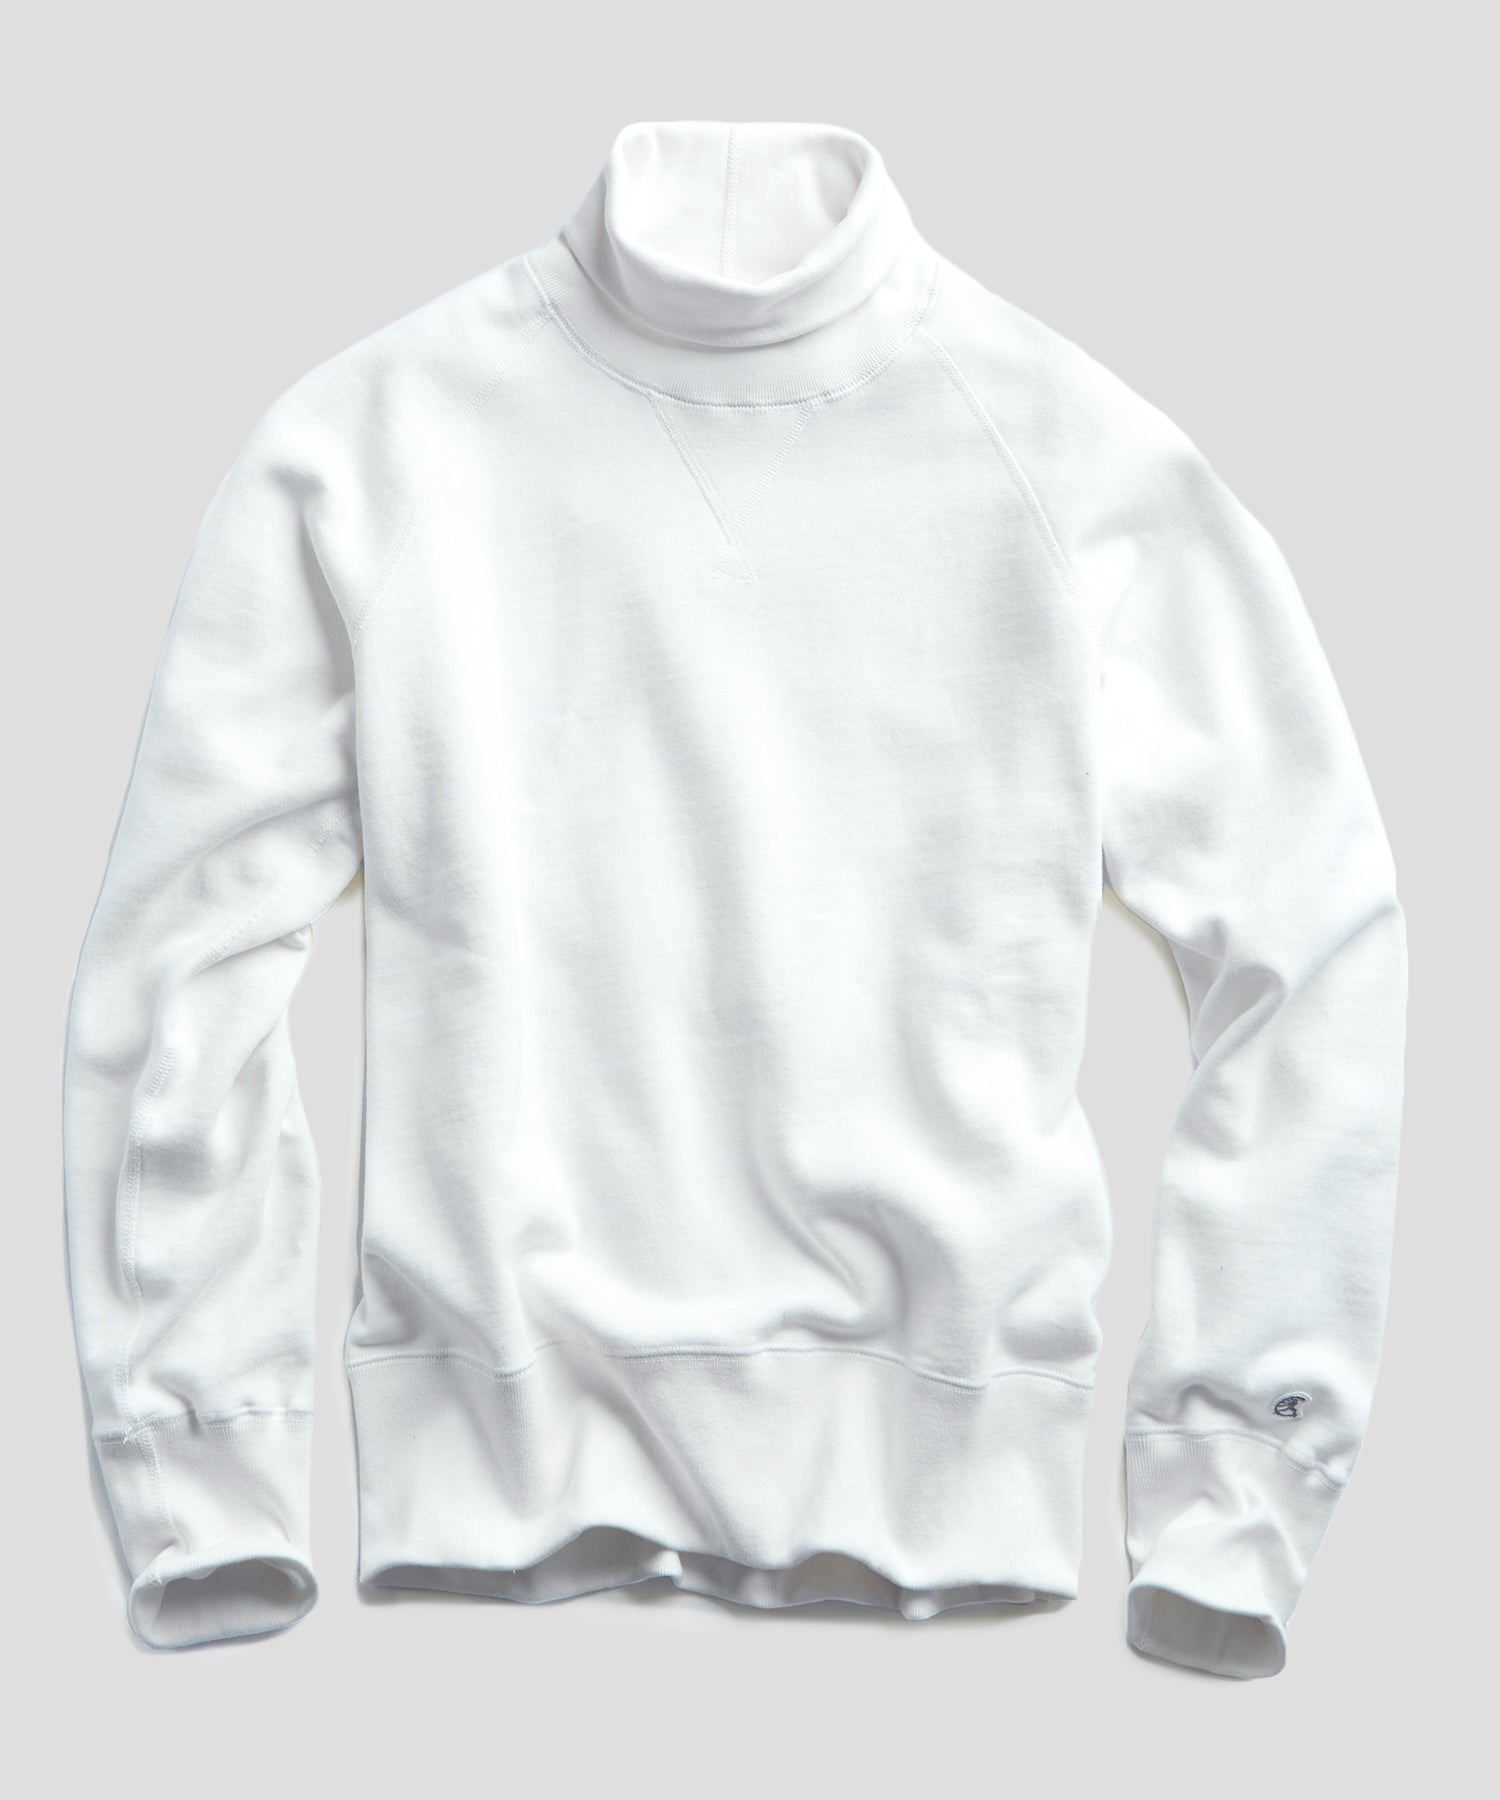 Heavyweight Turtleneck Sweatshirt in White